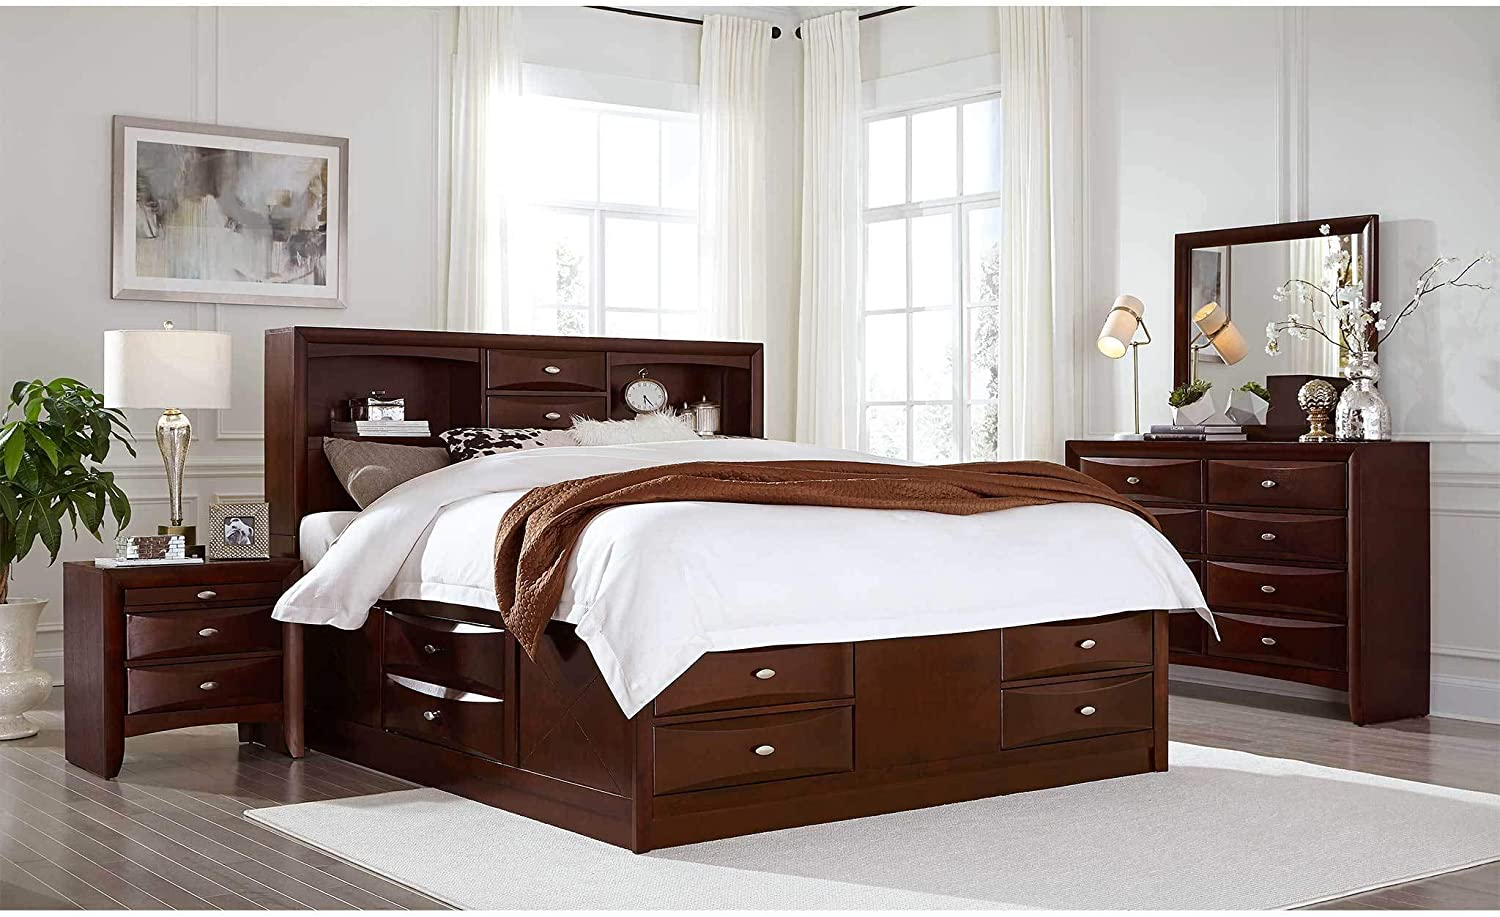 Full, Black Global Furniture USA Linda Bedroom Set Includes Inside Delivery with Assembly to Room of Choice 5 Piece